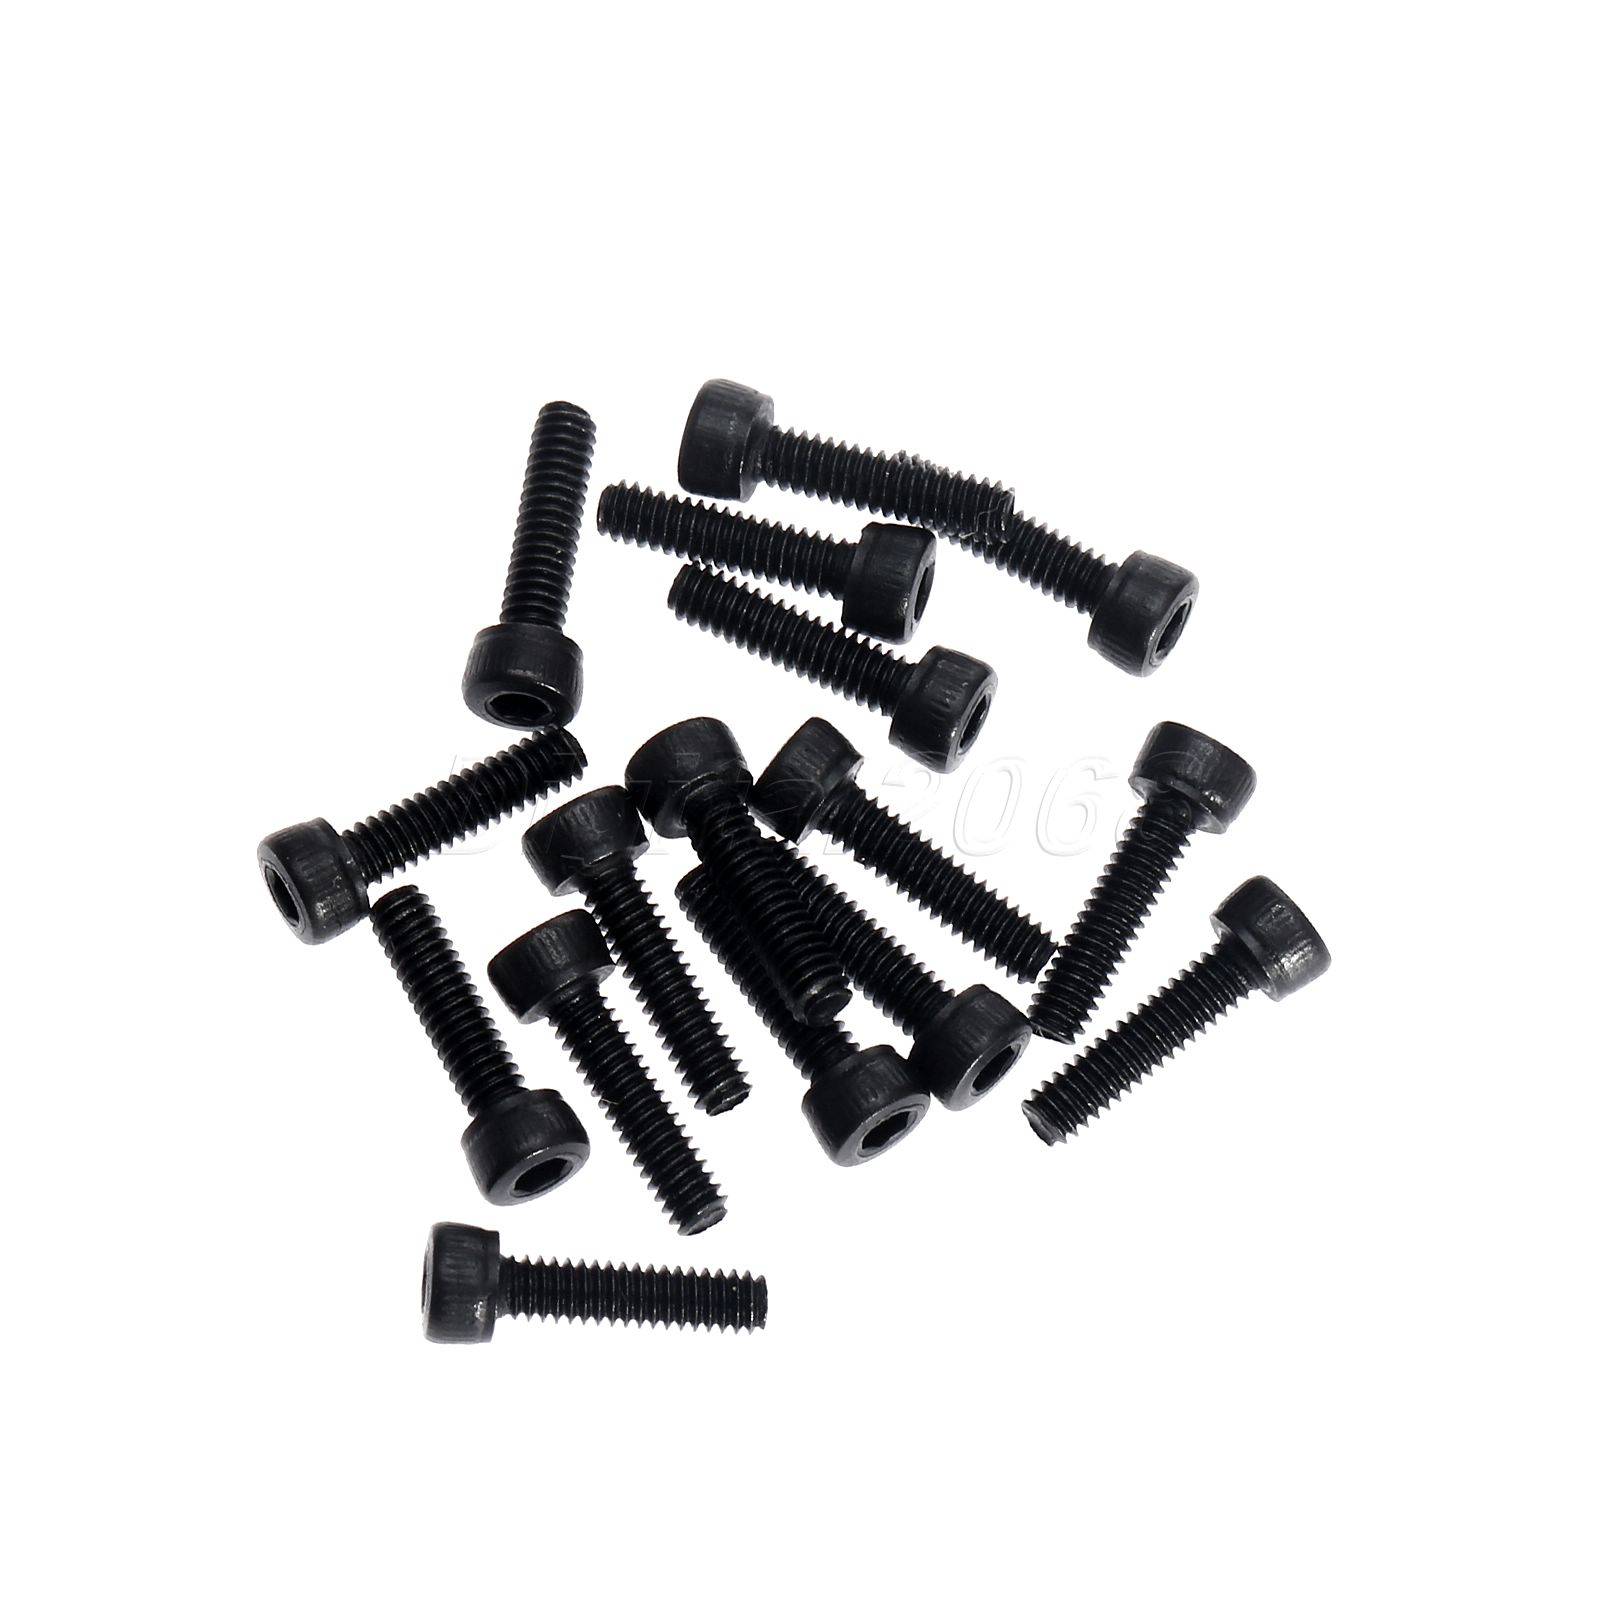 10x 8mm BLACK NYLON PLASTIC FULL NUTS FOR M8 SCREWS AND BOLTS NEW PACK